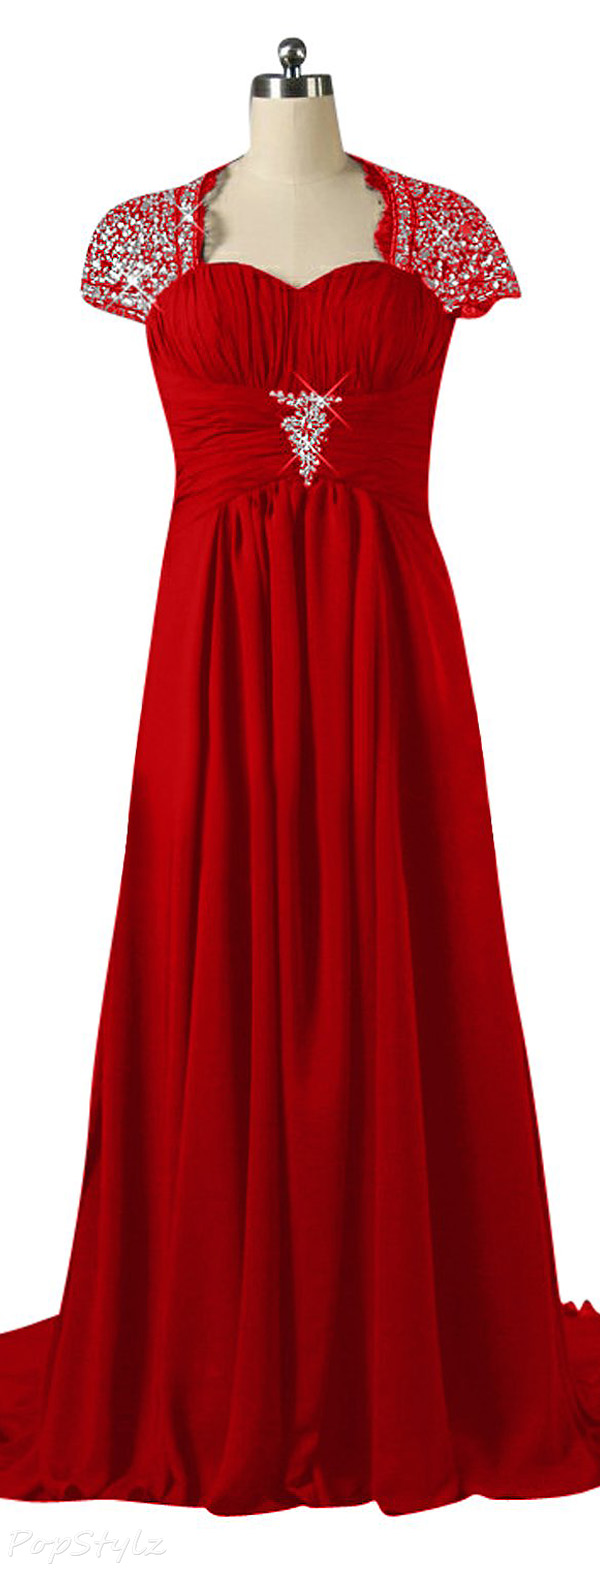 Sunvary Cap Sleeves Formal Evening Gown